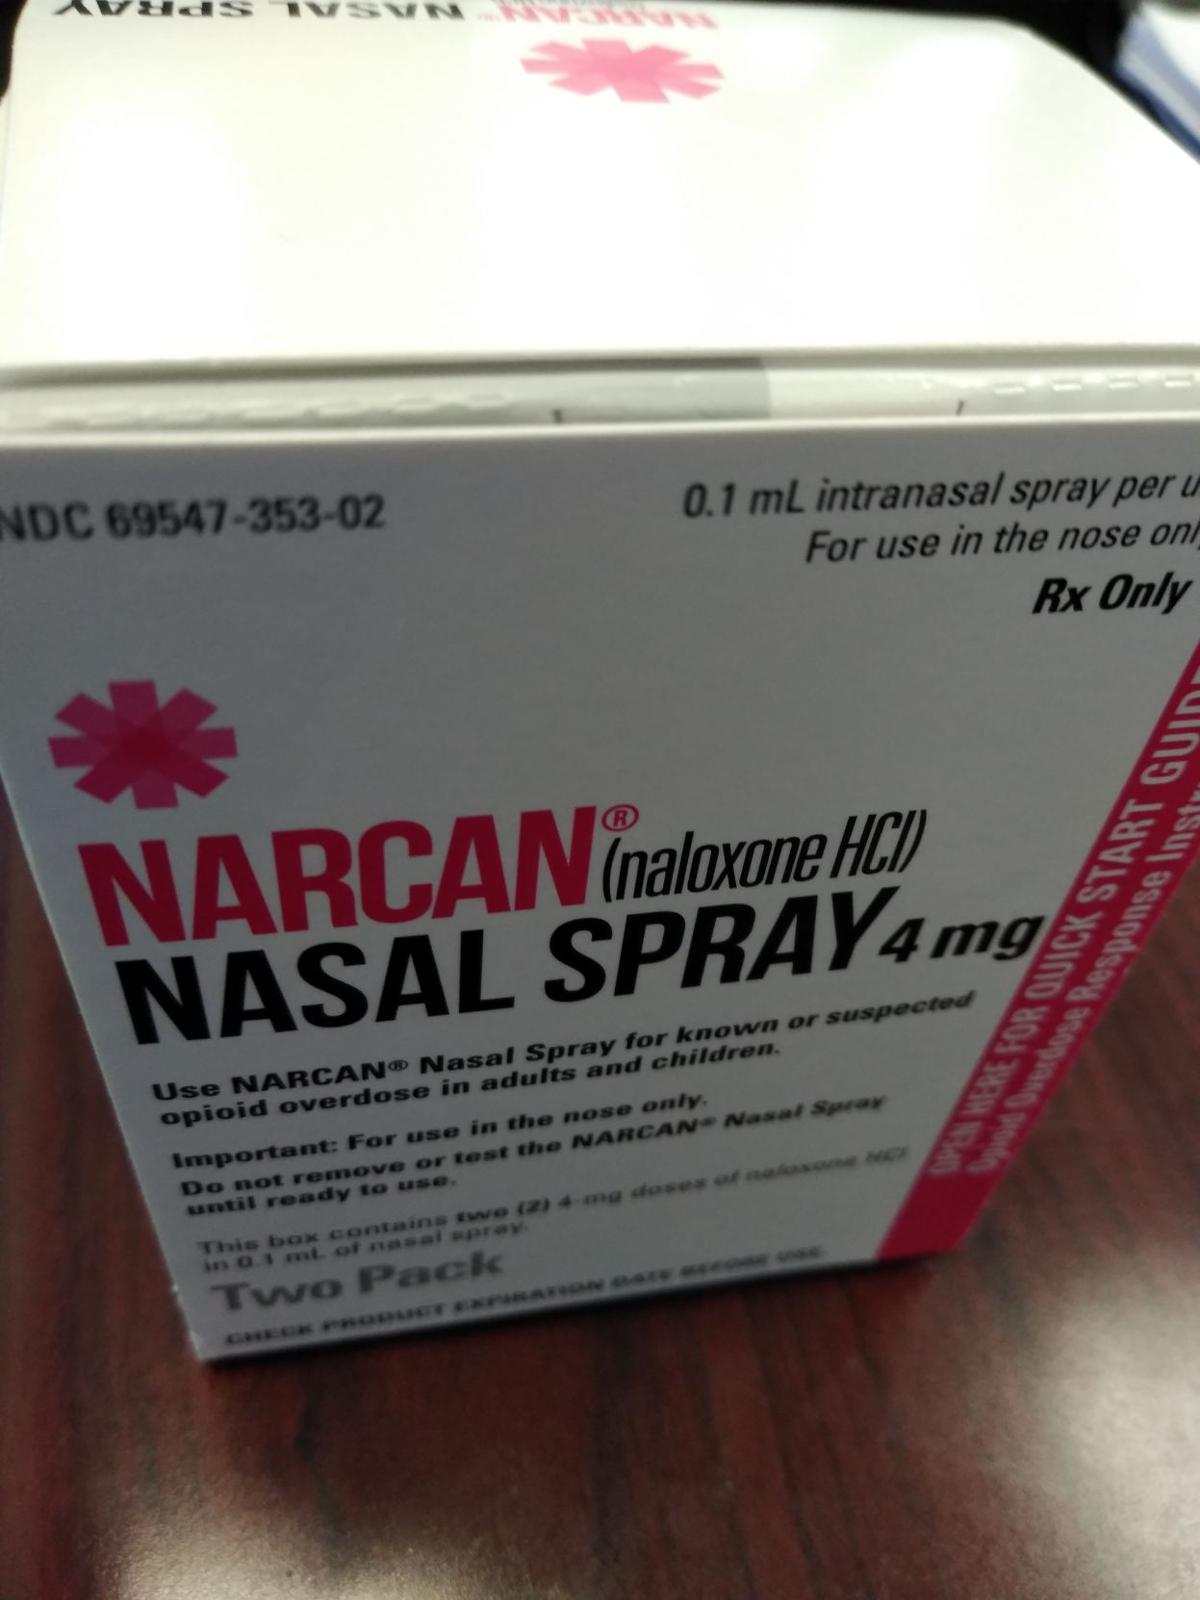 Narcan provided in North Port